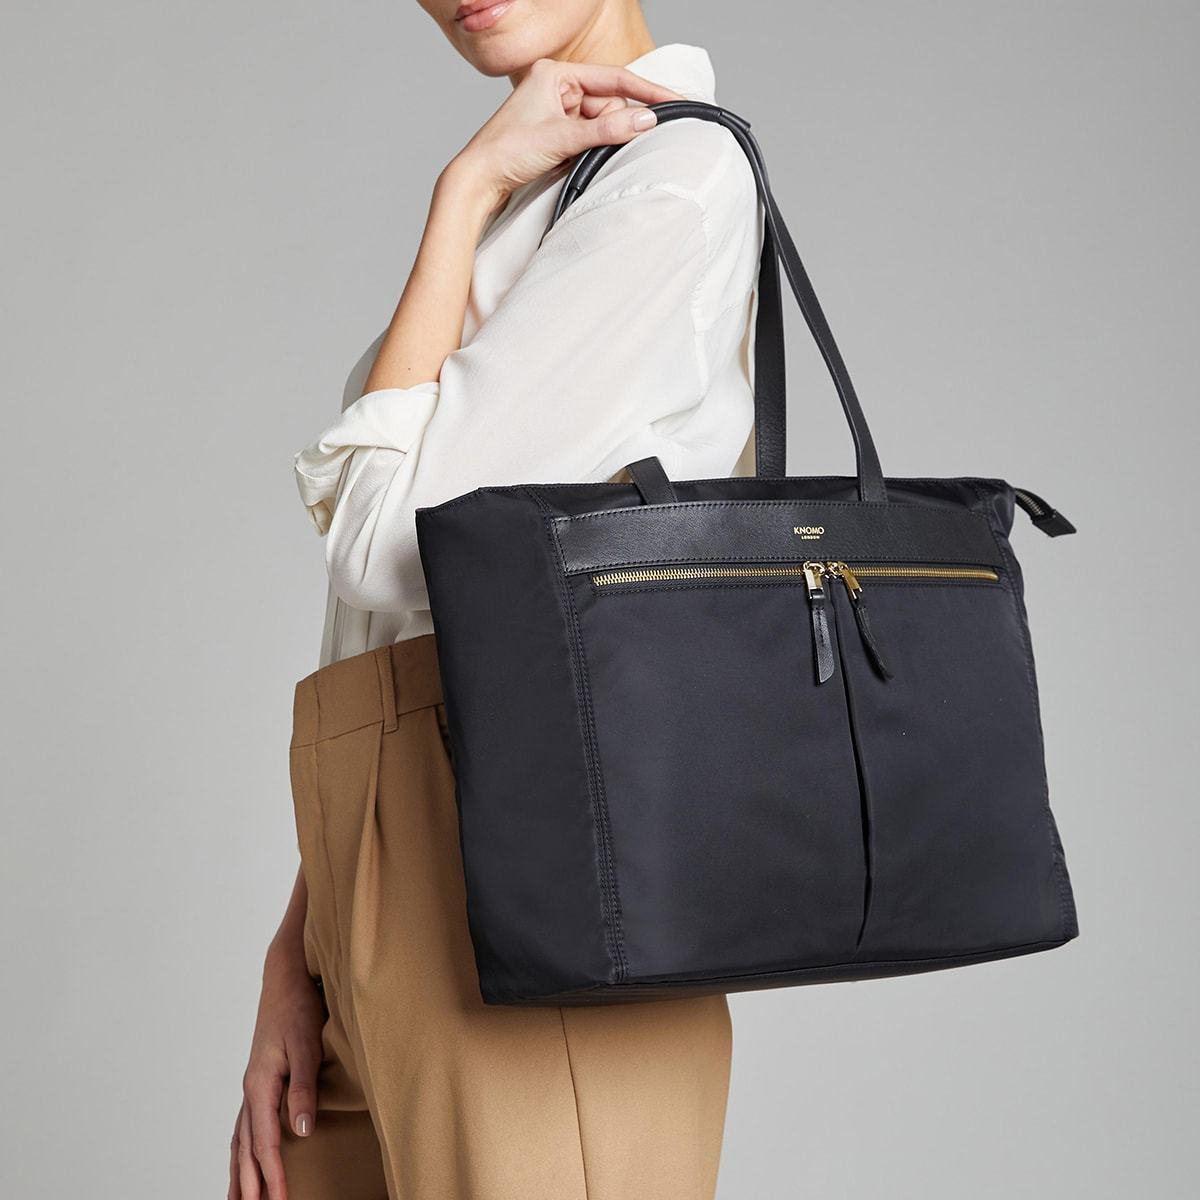 "KNOMO Grosvenor Place Tote Female Model Holding Over Shoulder 14"" -  Black 